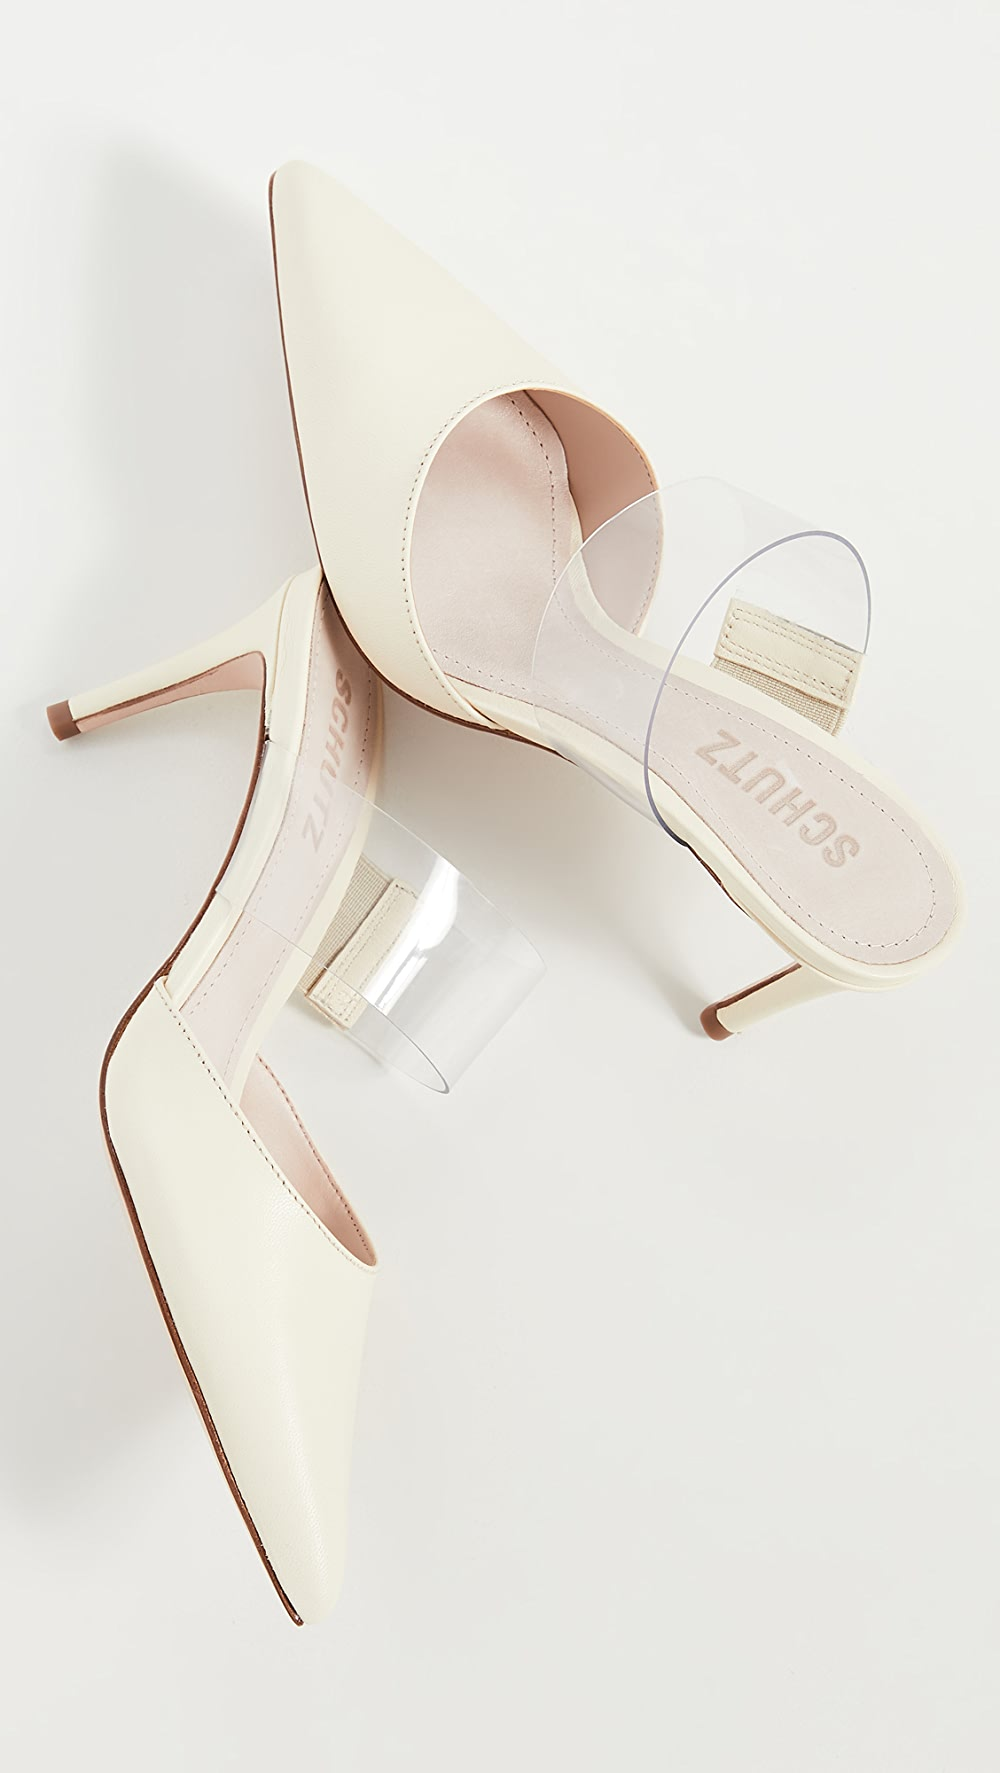 Capable Schutz - Adyre Mules Orders Are Welcome.